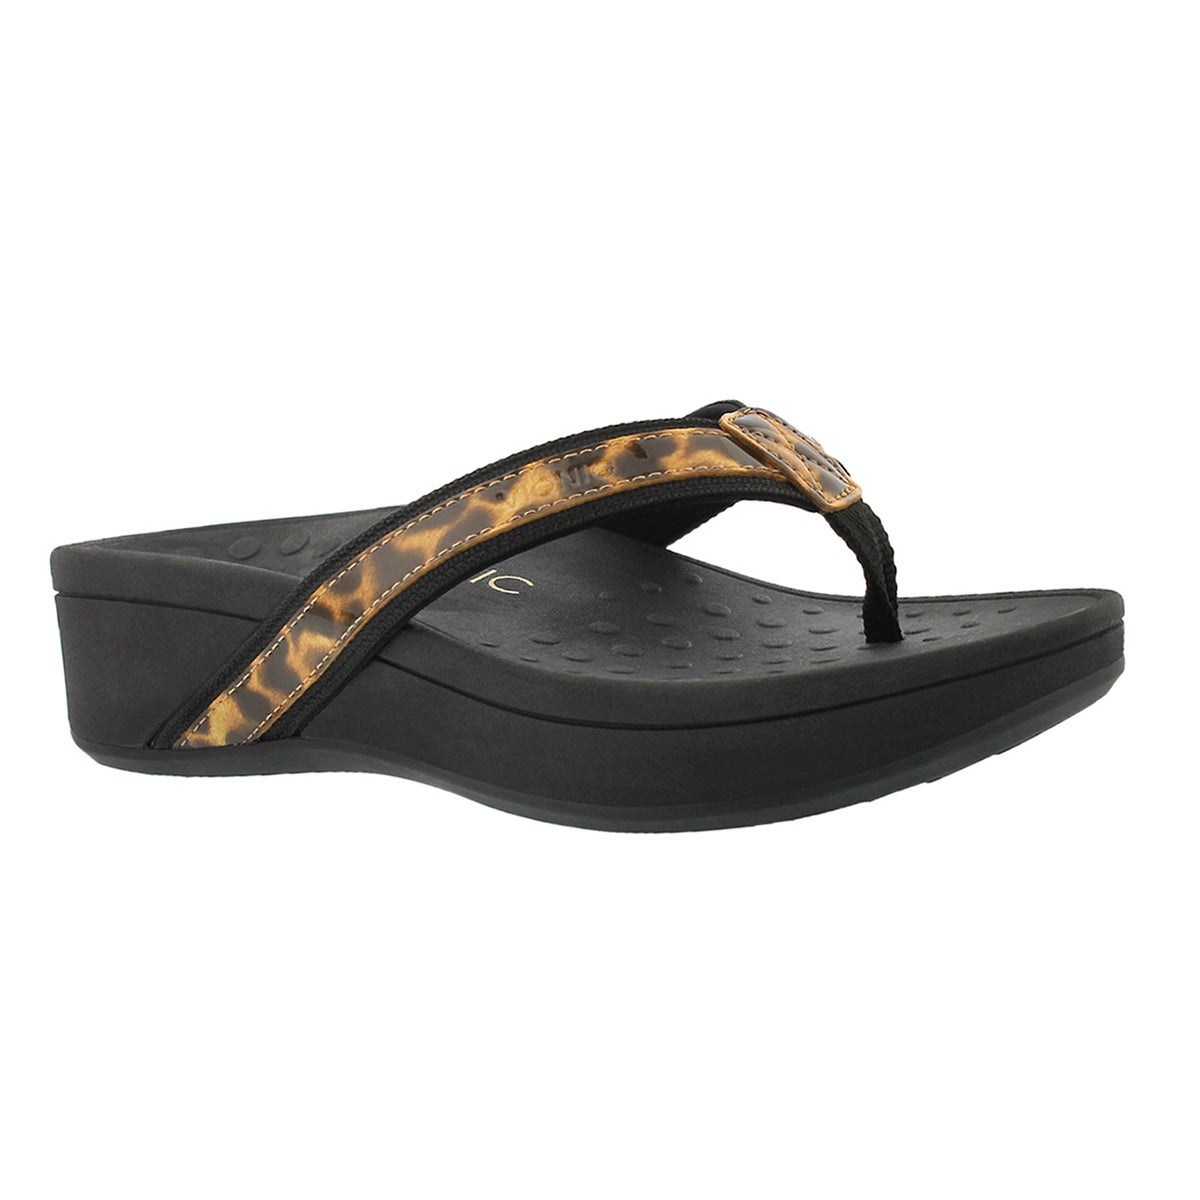 Women's HIGH TIDE leopard arch support sandals